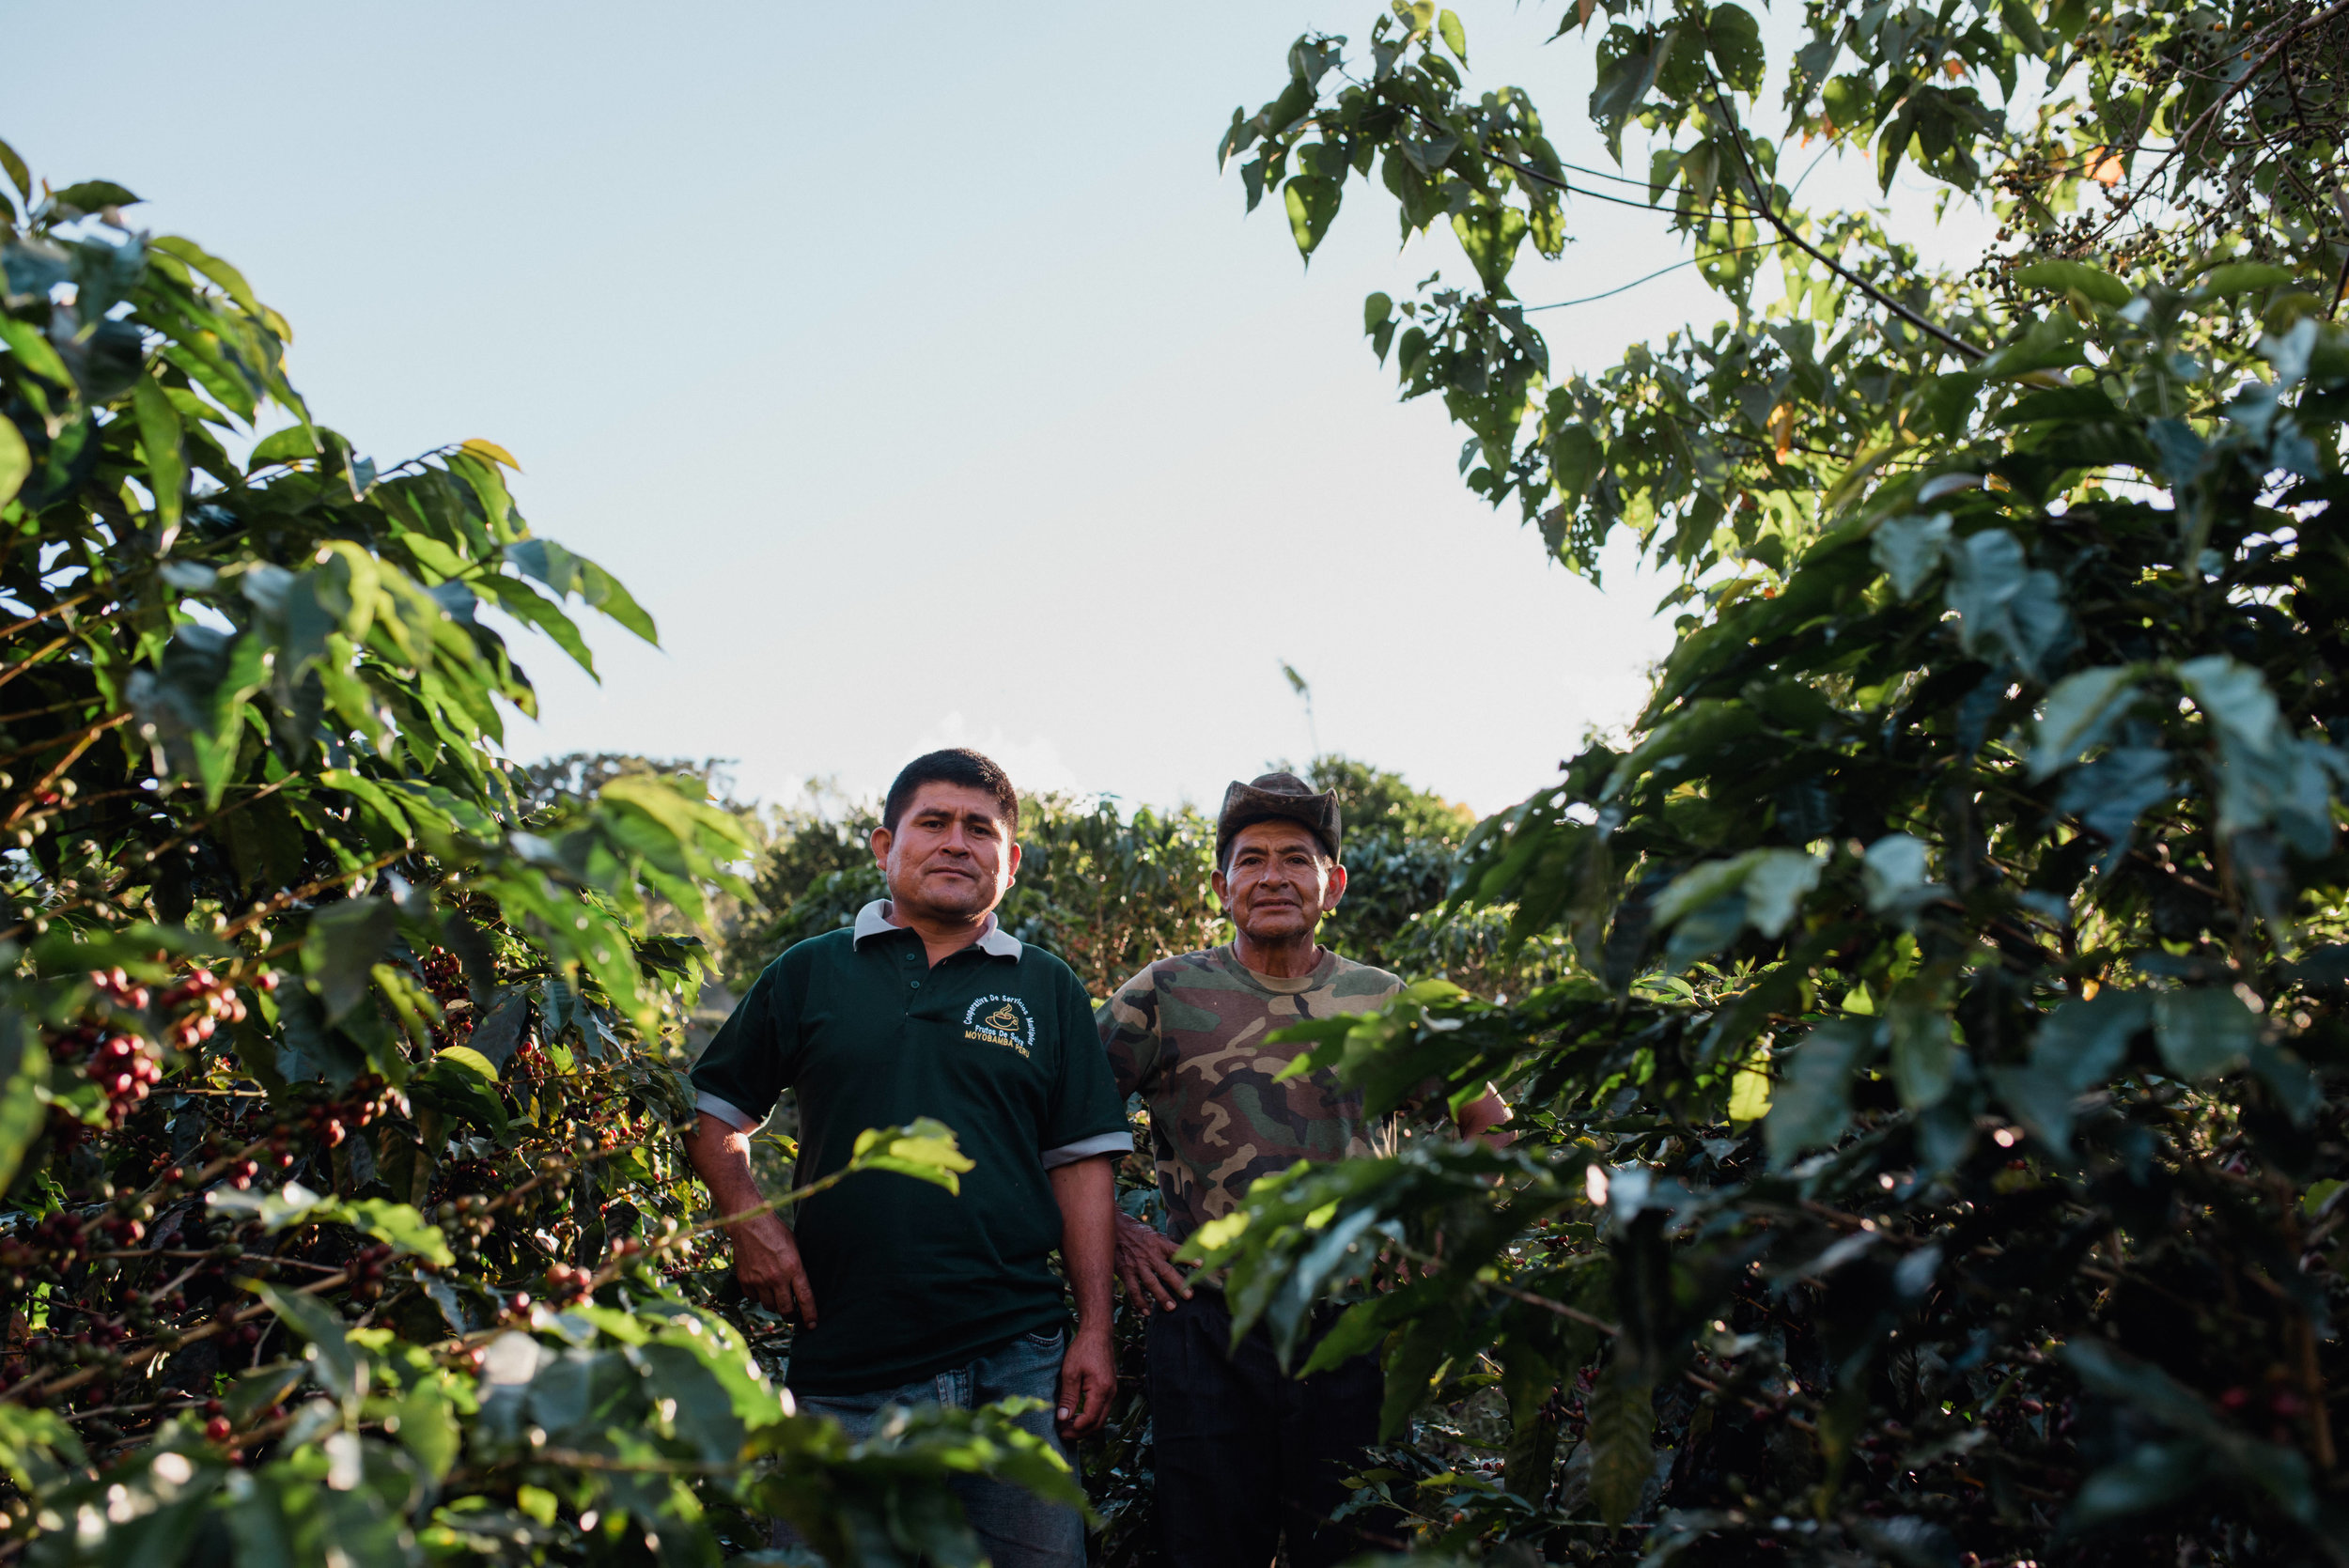 Daniel Diaz (left) and his father, Gonzalo Diaz (right), two of Farmers First Coffee's initial partner-farmers. Image courtesy of Farmers First Coffee